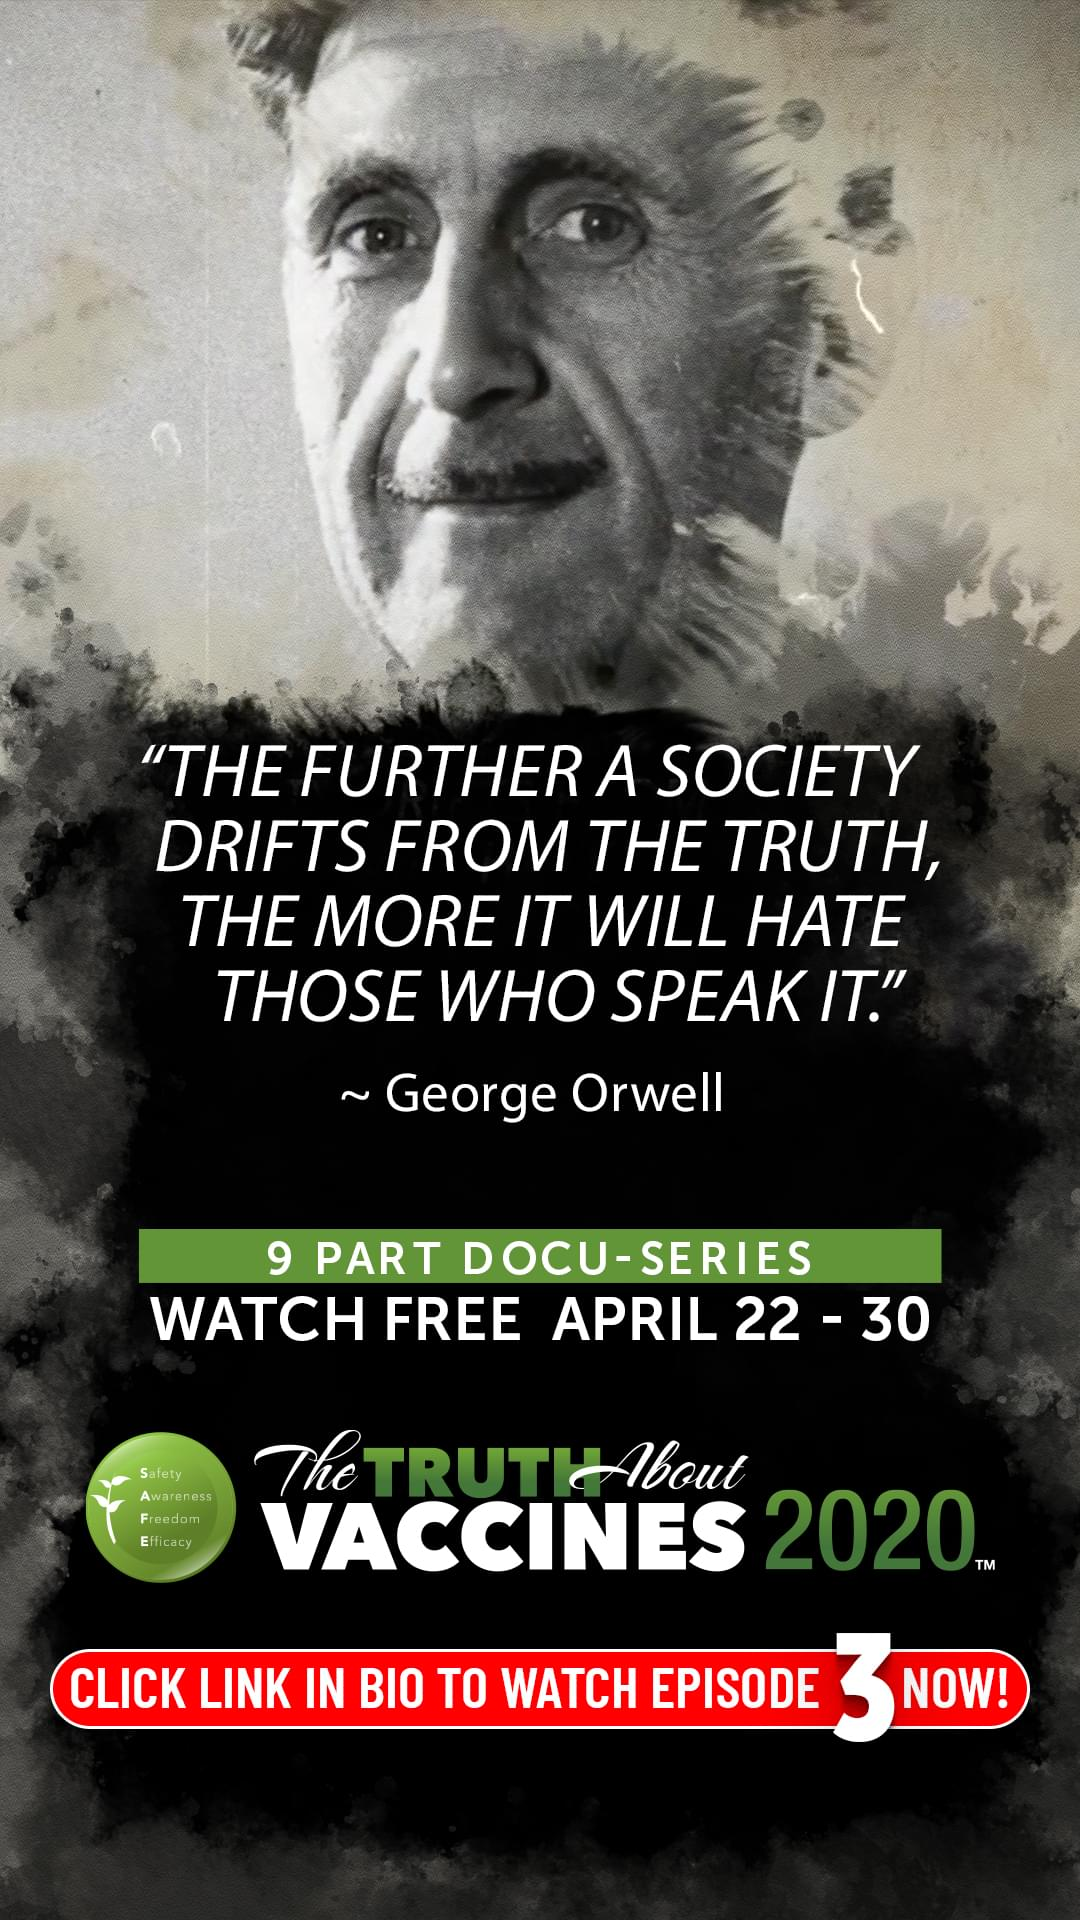 TTAV-ep03-Video_Quotes-George_Orwell-IG-1080X1920-min